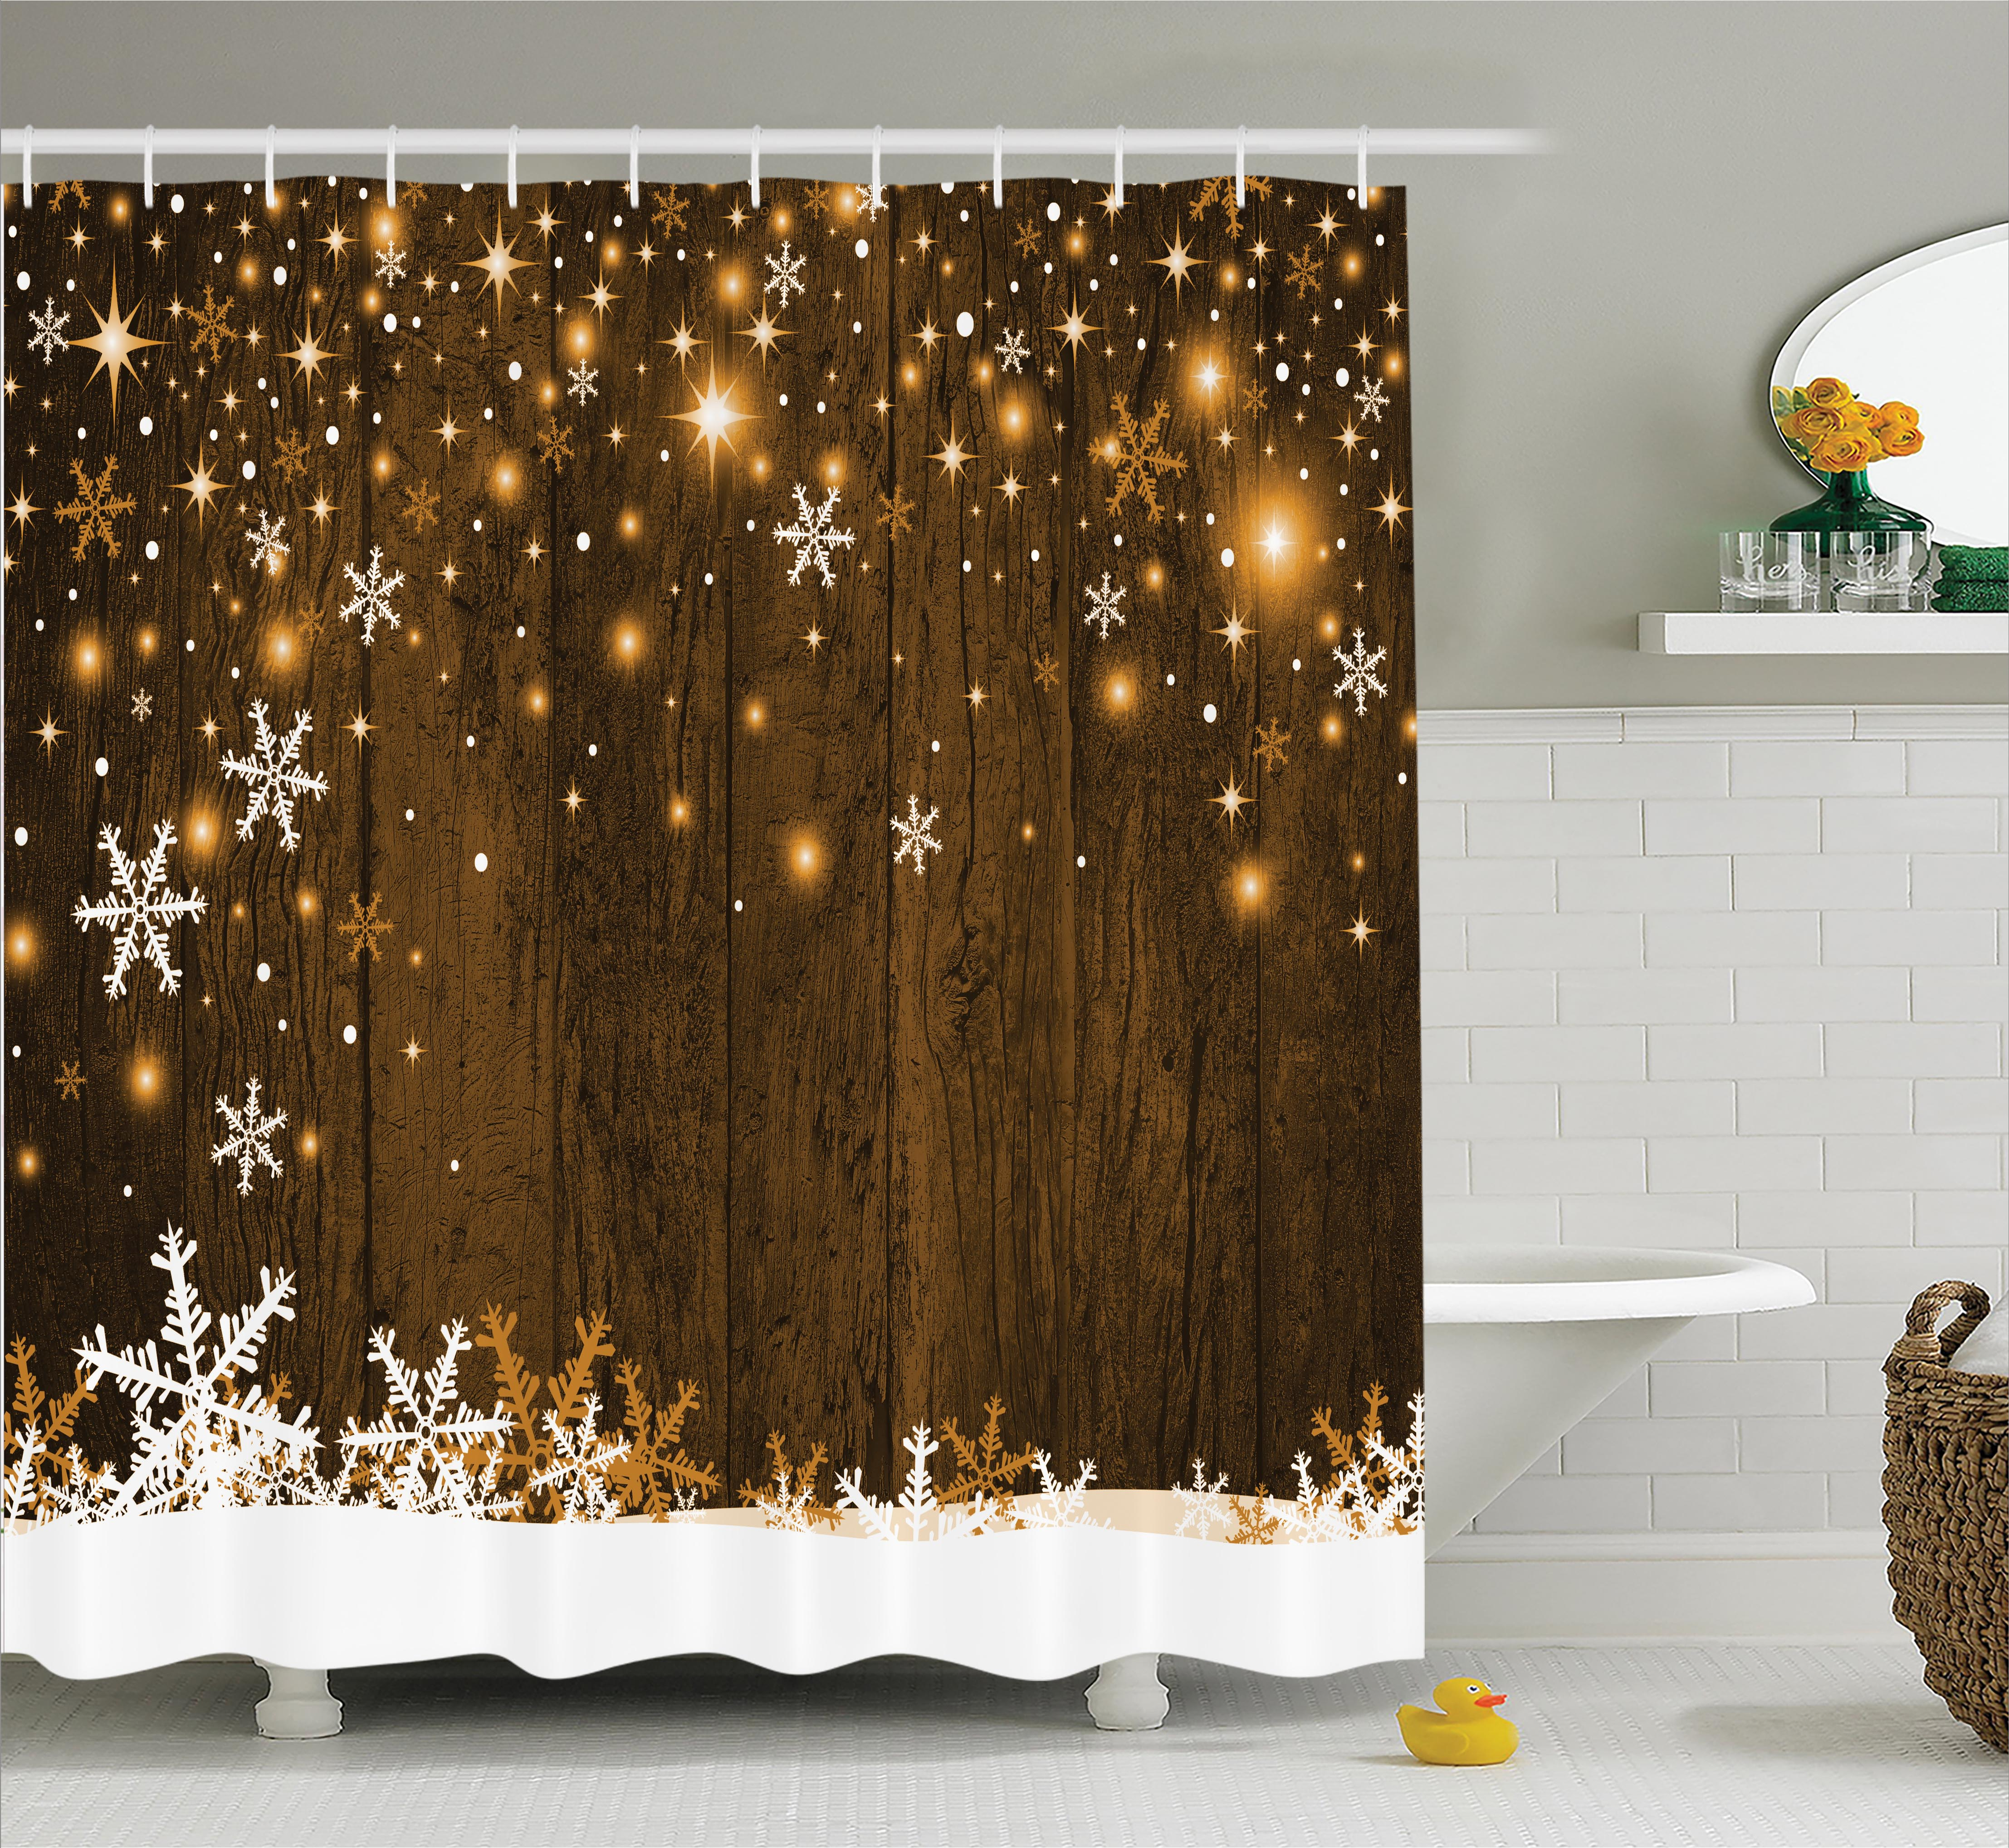 Christmas Decorations Shower Curtain Set, Rustic Wooden Backdrop With  Snowflakes And Lights Warm Xmas Celebration